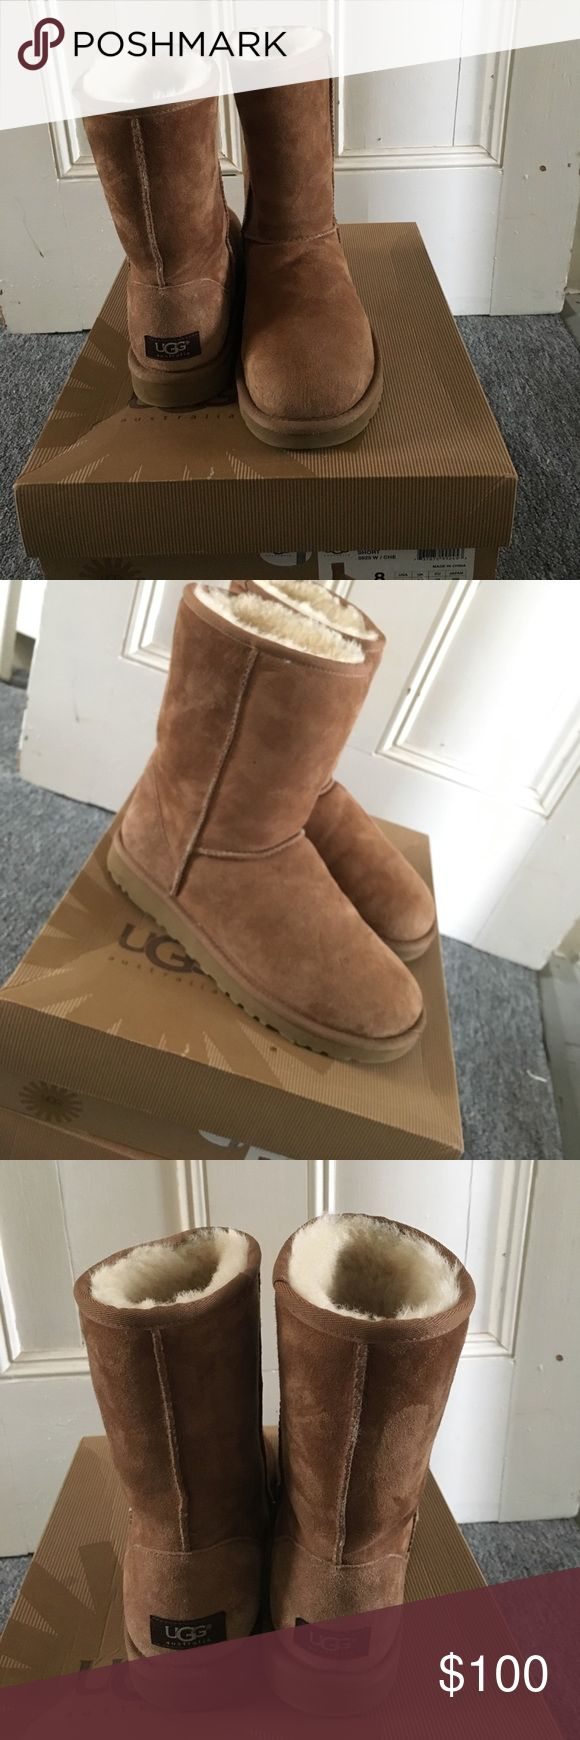 Chestnut Short Uggs In great condition worn once. Just small creases that can be fixed. Inside fur is in great condition as well. Comes with the original box. UGG Shoes Winter & Rain Boots